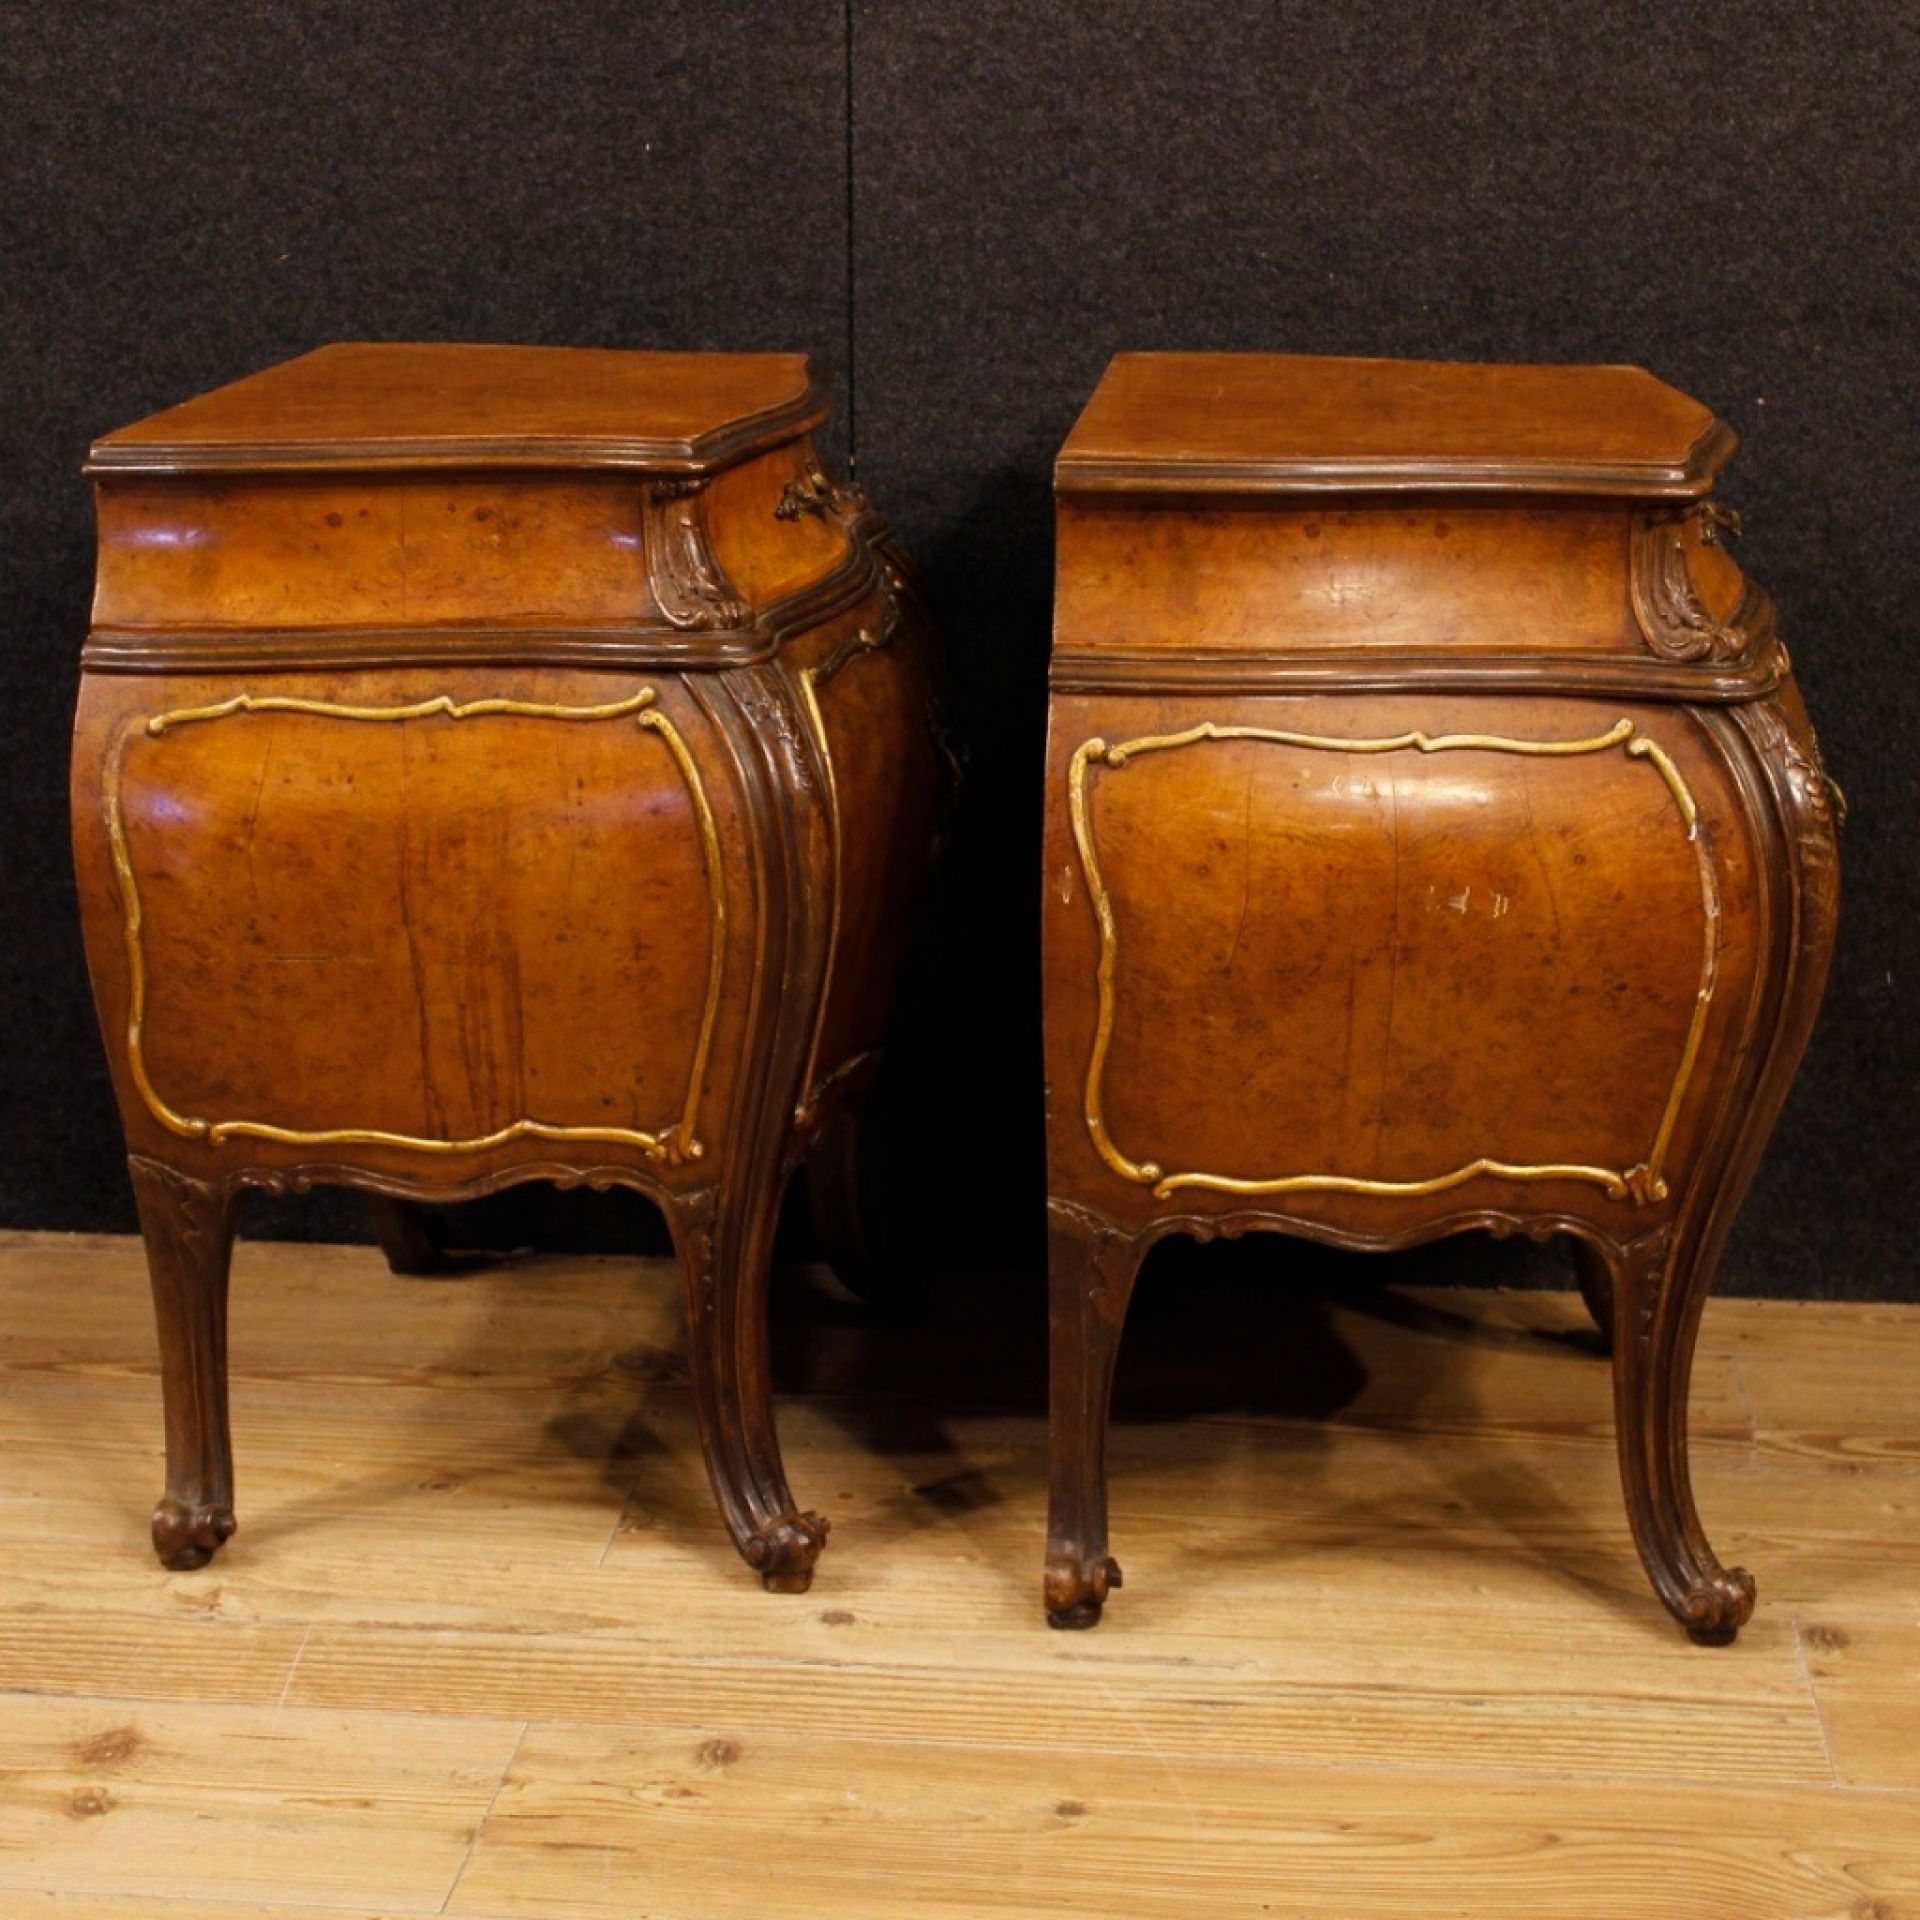 Pair Of Italian In Elm Burl And Oak Wooden Bedside Tables From 20th Century